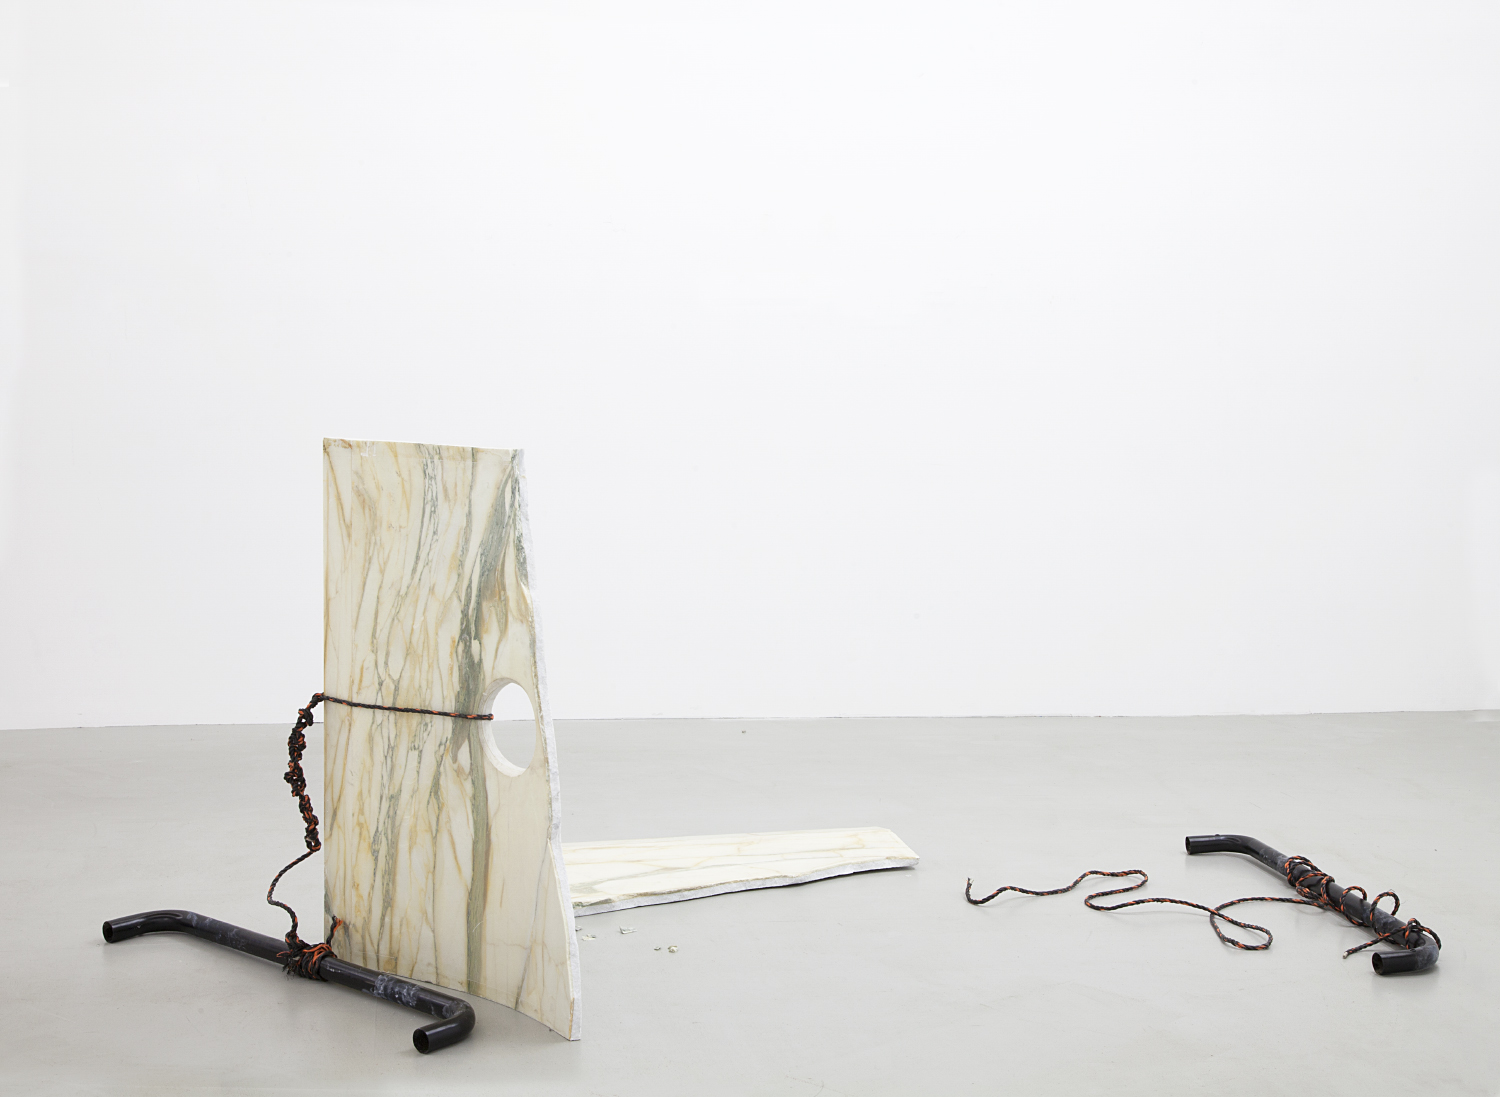 Limen Locale , 2015 Fragment from live event. Marble, rope, and coated aluminum bars 42.5 x 104.5 x 60 inches